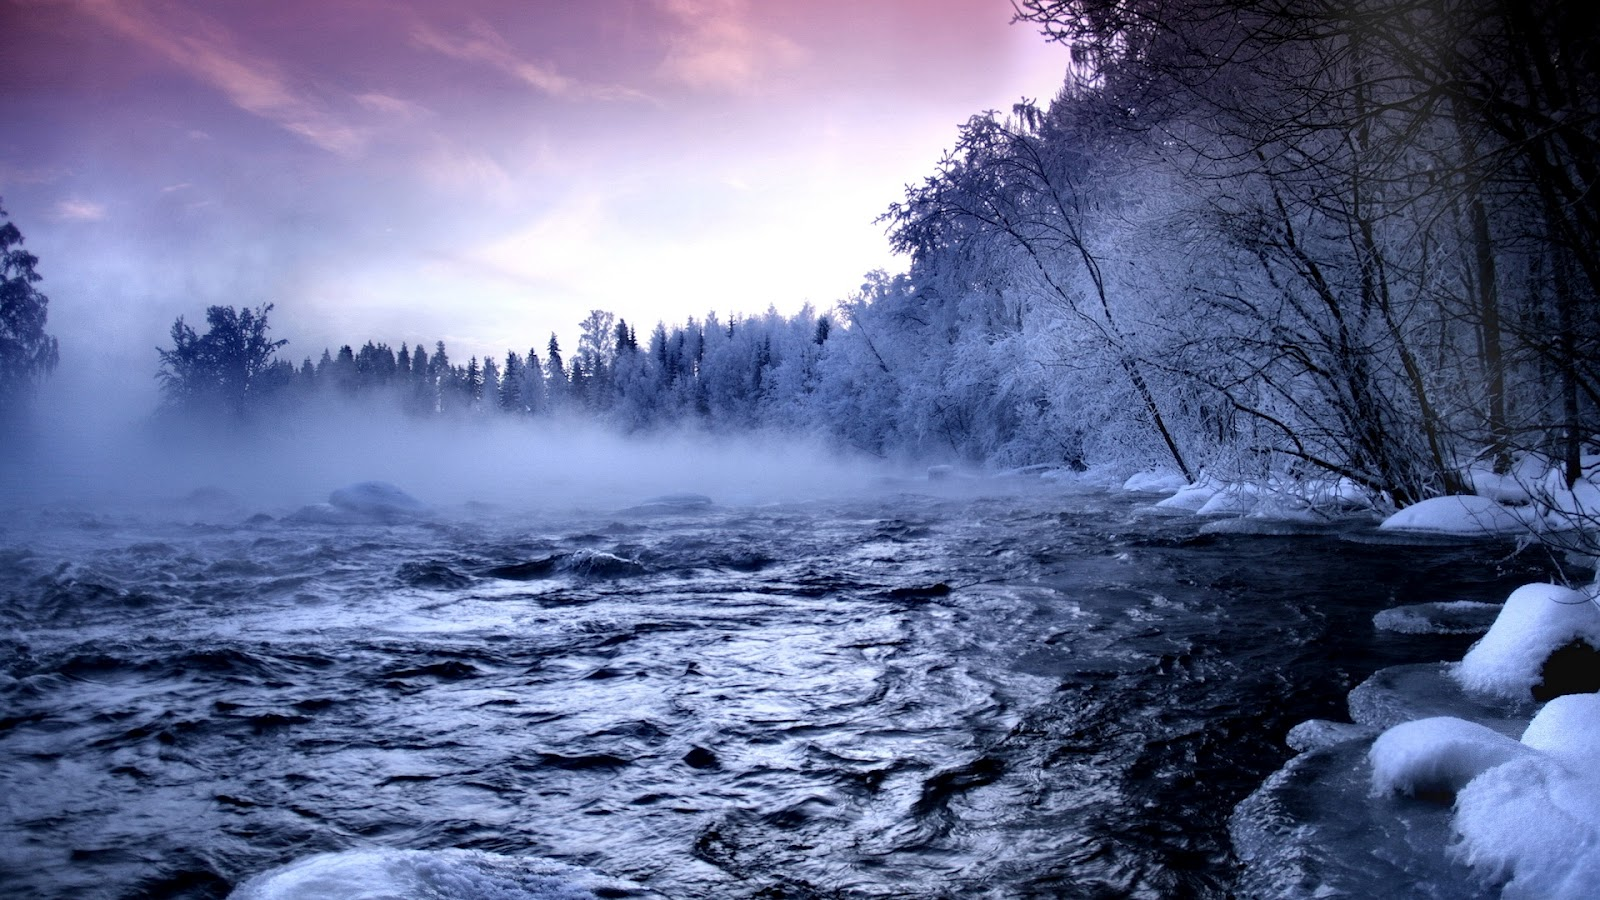 snow-nature-hd-hd-background-wallpaper-18 | HD Wallpapers ...